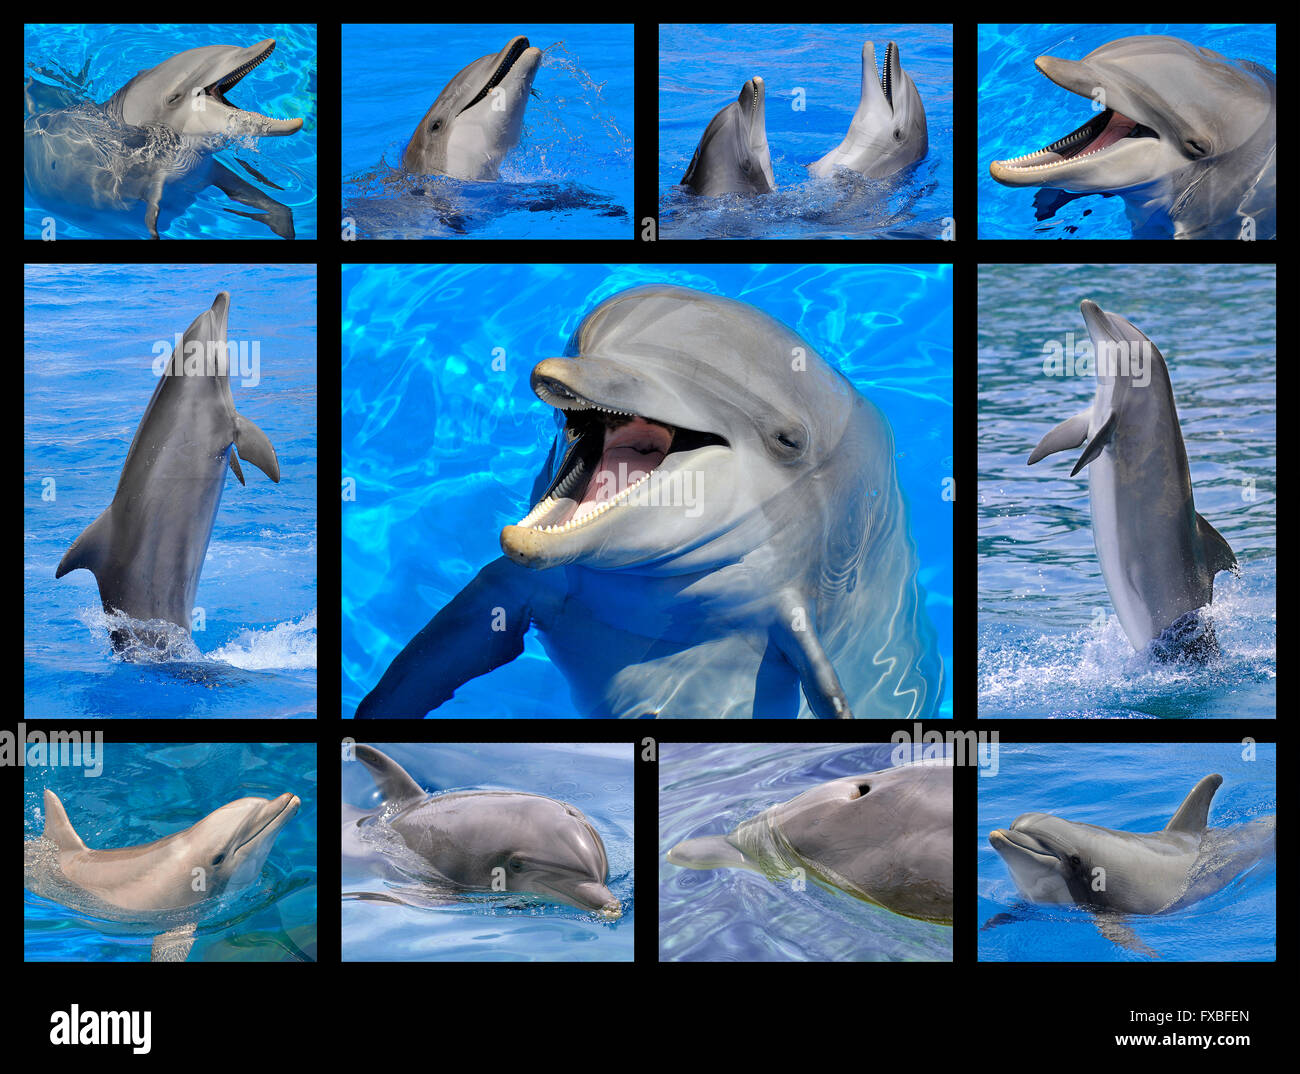 Eleven mosaic photos of  bottlenose dolphin (Tursiops truncatus) in the blue water - Stock Image